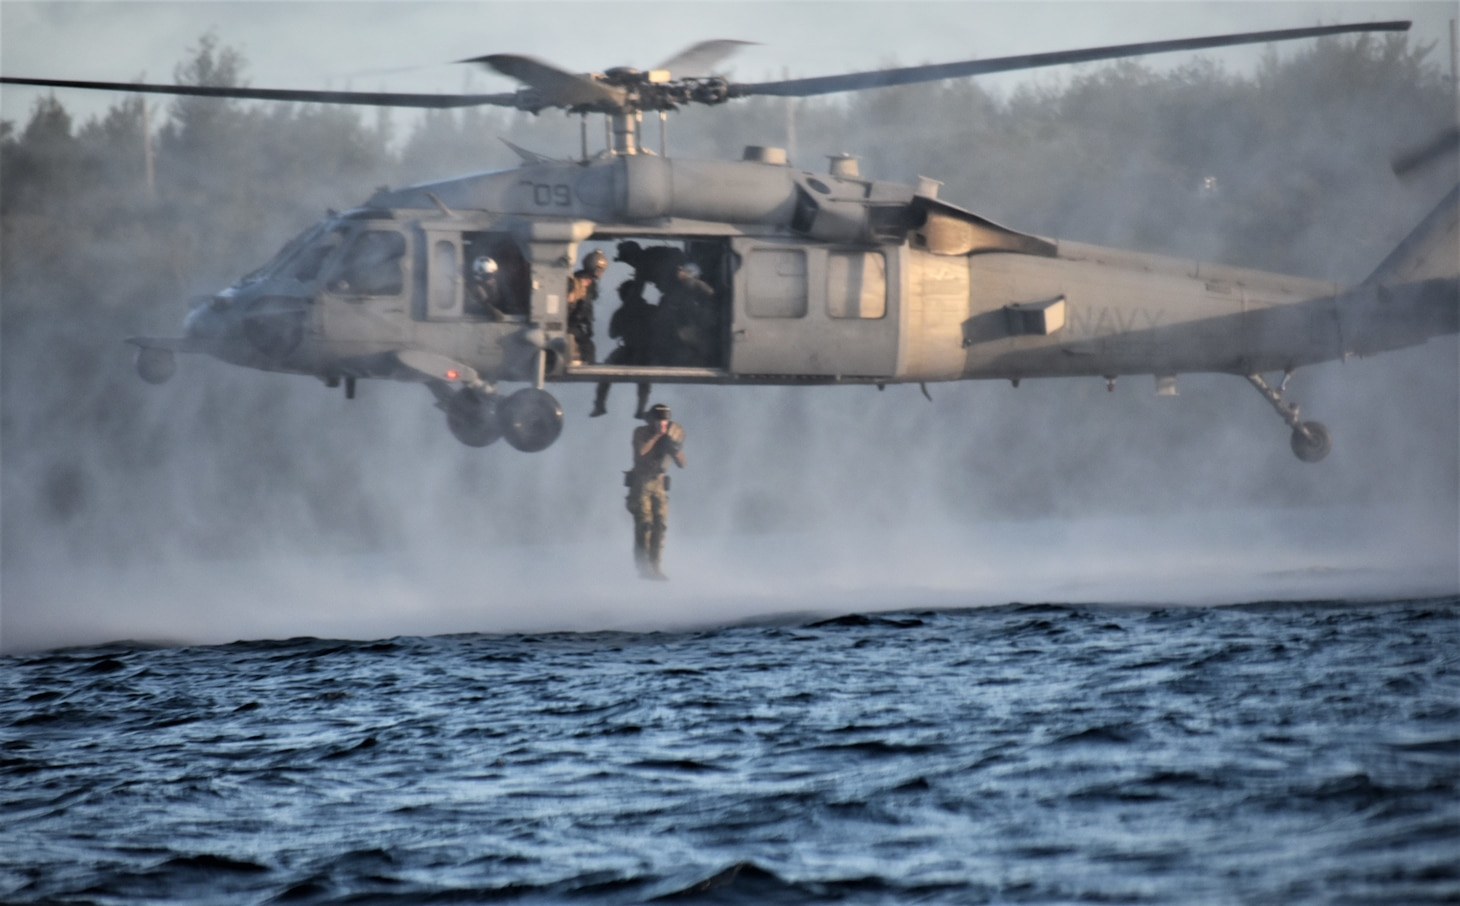 NAVAL BASE GUAM (April 15, 2019) Sailors assigned to Explosive Ordnance Disposal Mobile Unit (EODMU) 5, jump out of a MH-60S Seahawk helicopter, attached to Helicopter Sea Combat Squadron (HSC) 25, during a Cast and Recovery portion of the Naval Helicopter Rope Suspension Technique (HRST) course. EODMU-5 is assigned to Commander, Navy Expeditionary Forces Pacific, the primary expeditionary task force responsible for the planning and execution of coastal riverine operations, explosive ordnance disposal, diving engineering and construction, and underwater construction in the U.S. 7th Fleet area of operations.